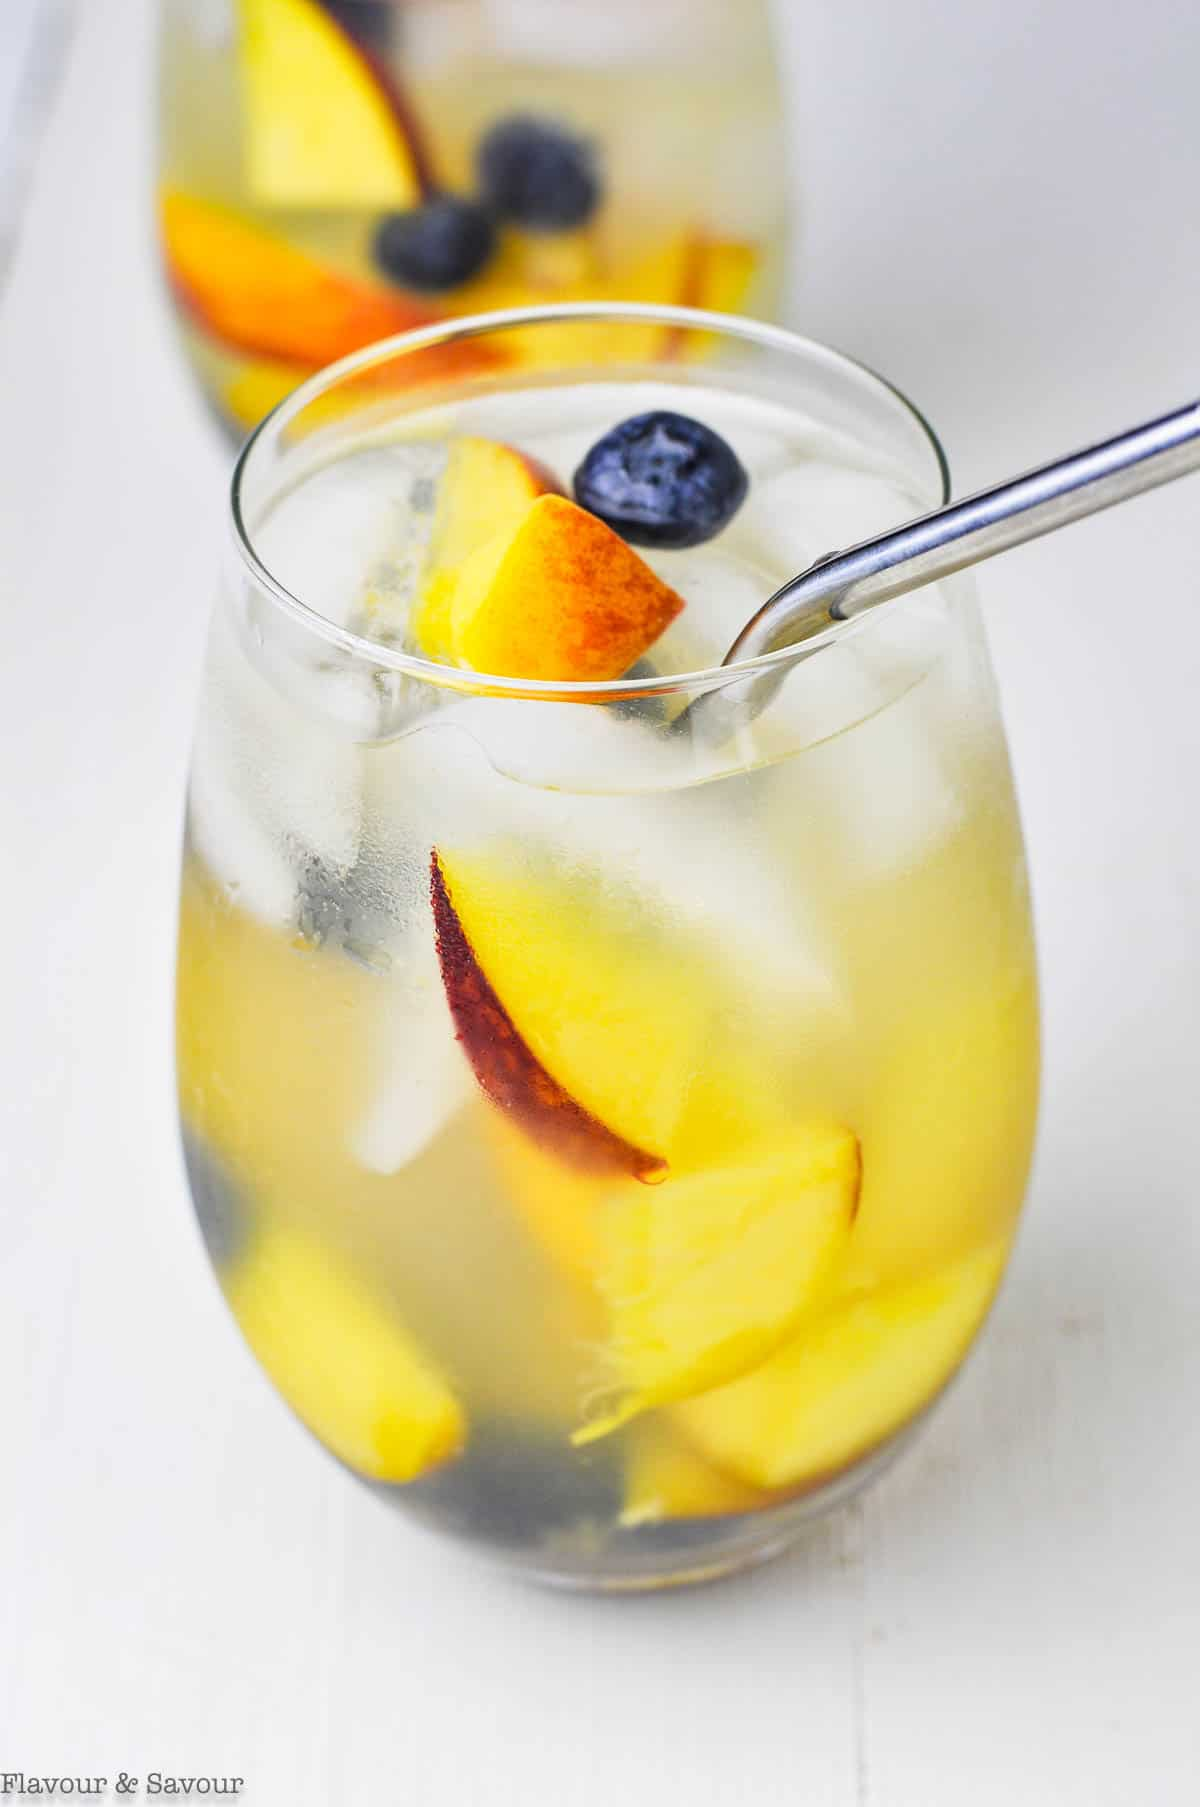 Close up view of a glass of peach sangria with a straw